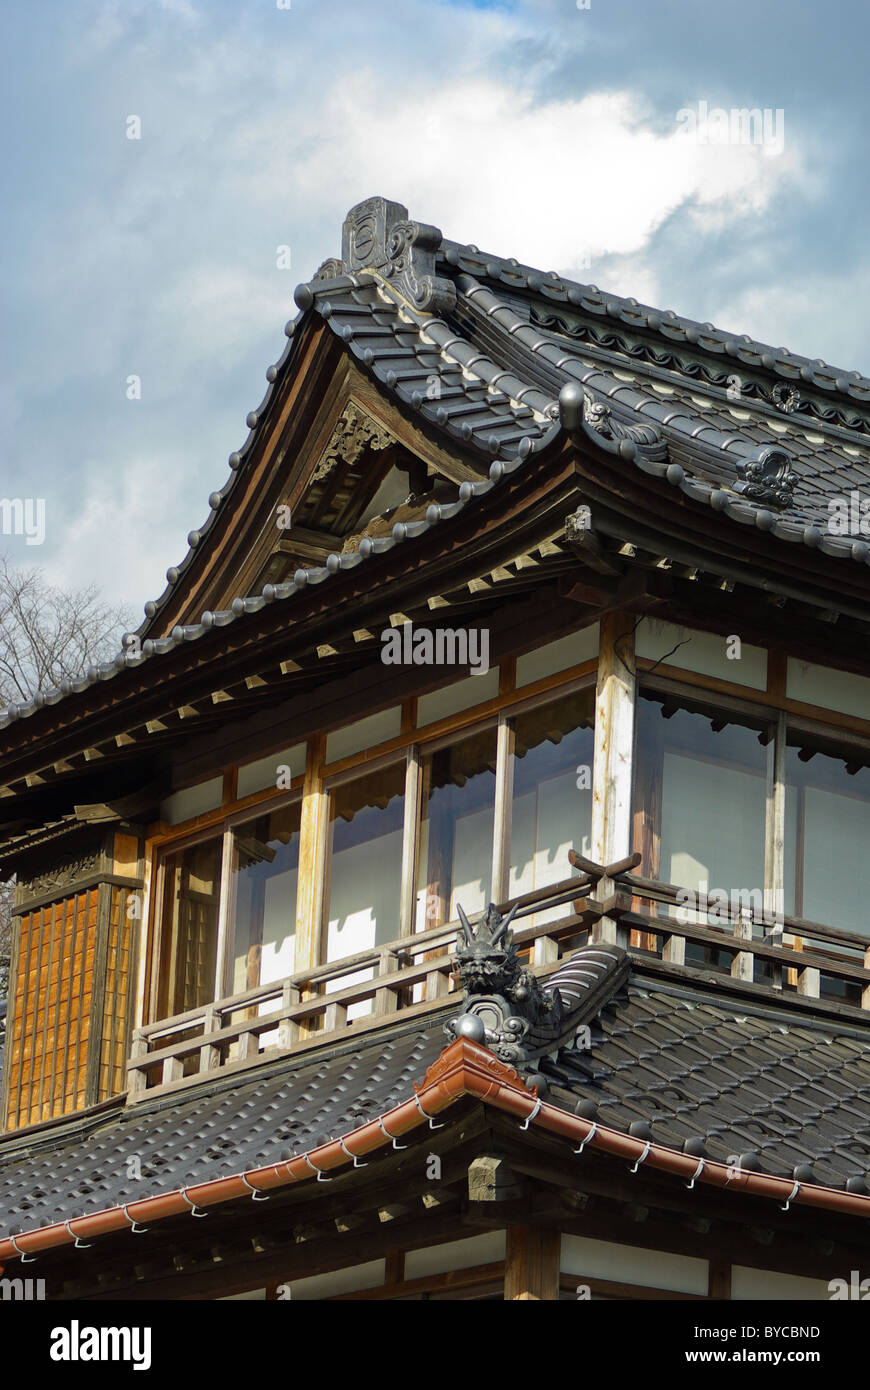 Roof Detail Of An Old Fashioned Japanese Style House Along The Matsushima  Promenade, Miyagi Prefecture, Japan, Asia